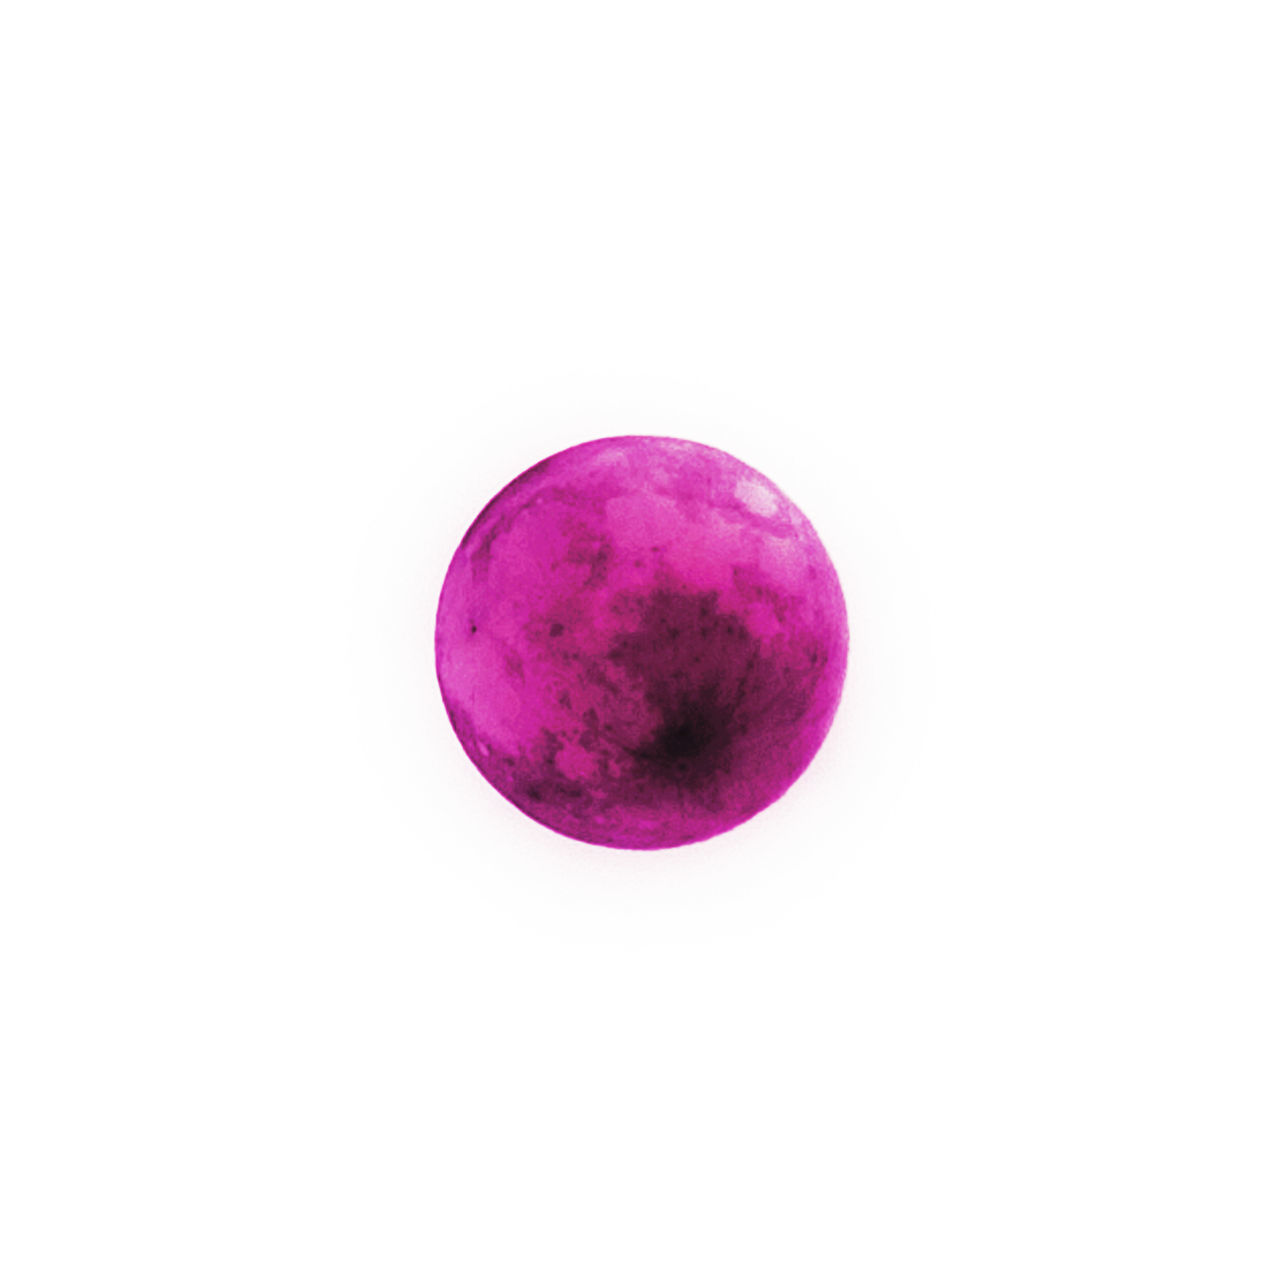 Astronomy Cherry Cherry Moon Close-up Full Moon Galaxy Inverted Inverted Colours Inverted Photography Marble Marble Moon Moon Moon Surface No People Purple Scenics Space Sphere Square Format Taw Unnatural White Background